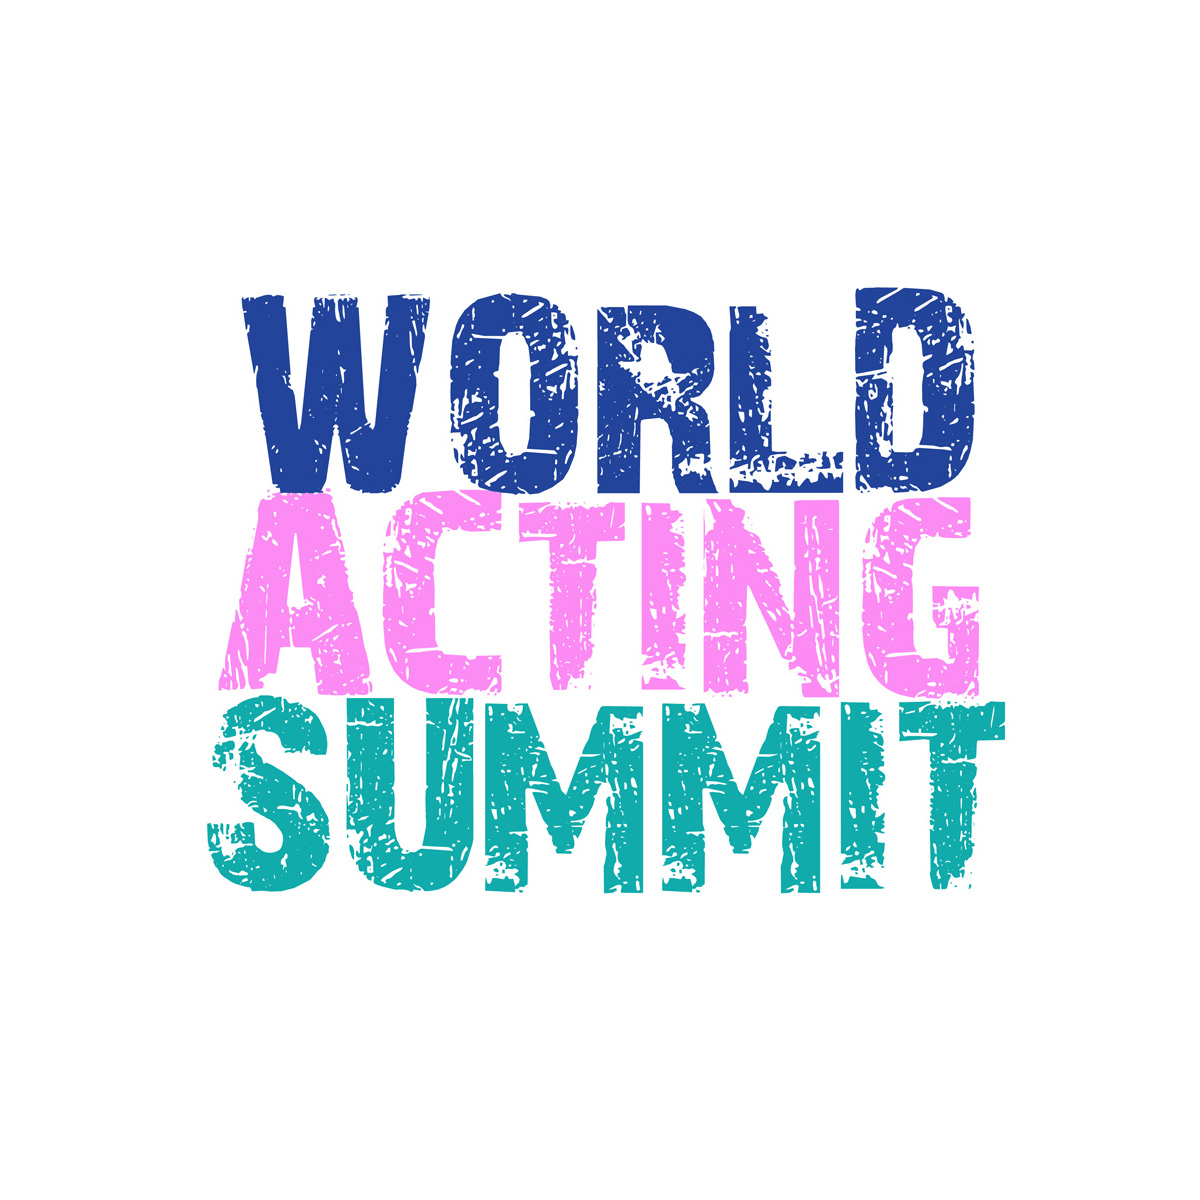 worldactingsummit